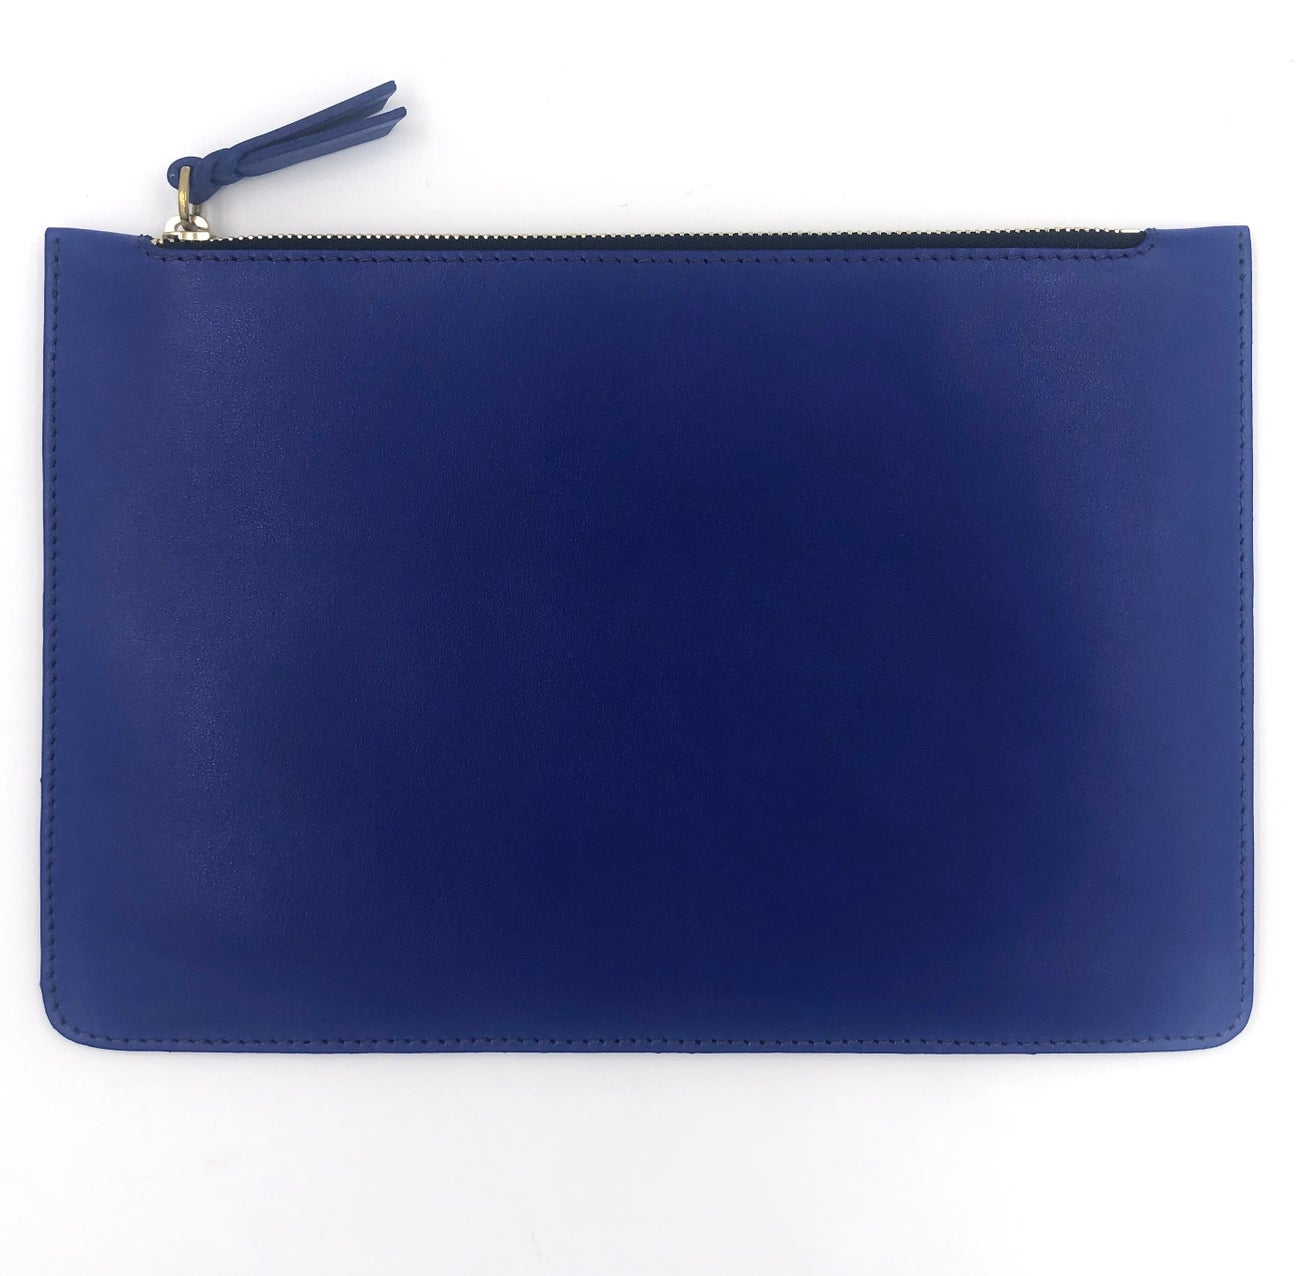 BLUE KLEIN SMOOTH XL POUCH